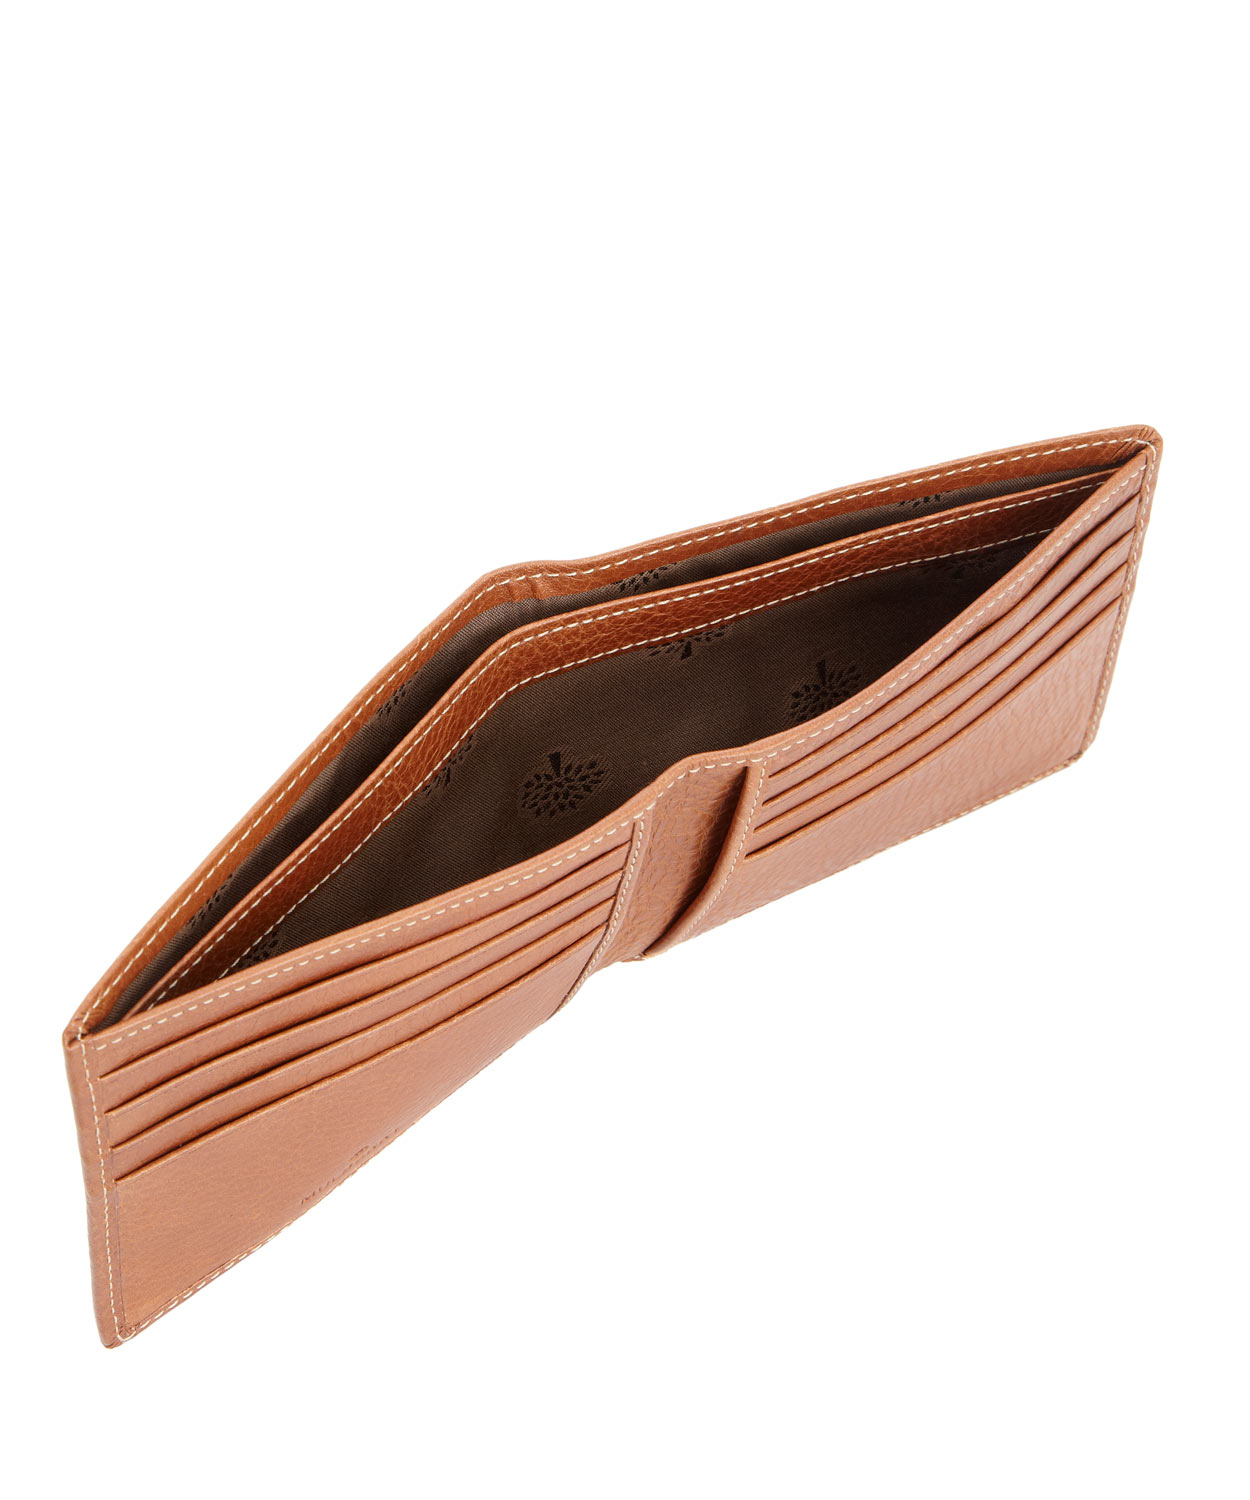 c09fa9f2a23 ... billfold wallet 6fcac d12b2 amazon lyst mulberry tan leather 8 card  wallet in orange for men db736 4372b ...